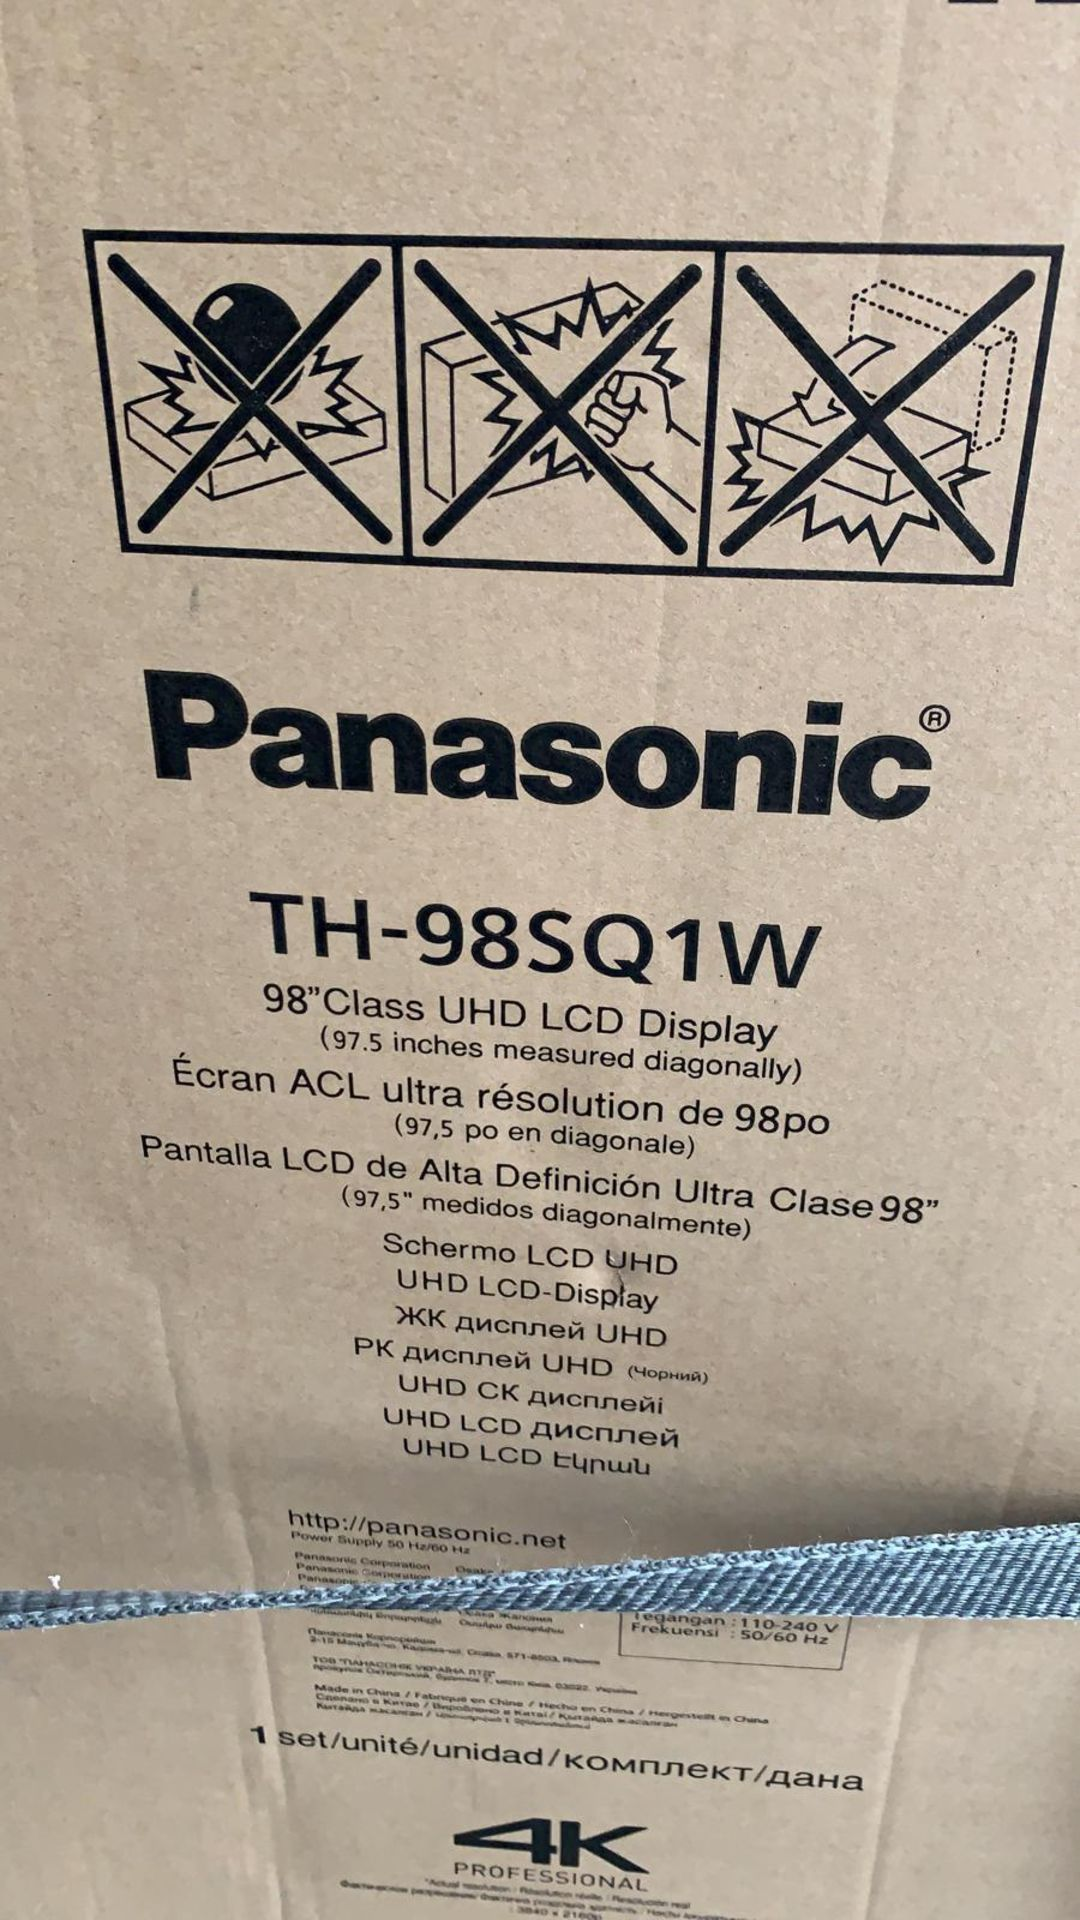 A Panasonic TH-98SQ1W 98in Class Large Format 4K Digital Display (damaged screen needs replacing, - Image 2 of 2